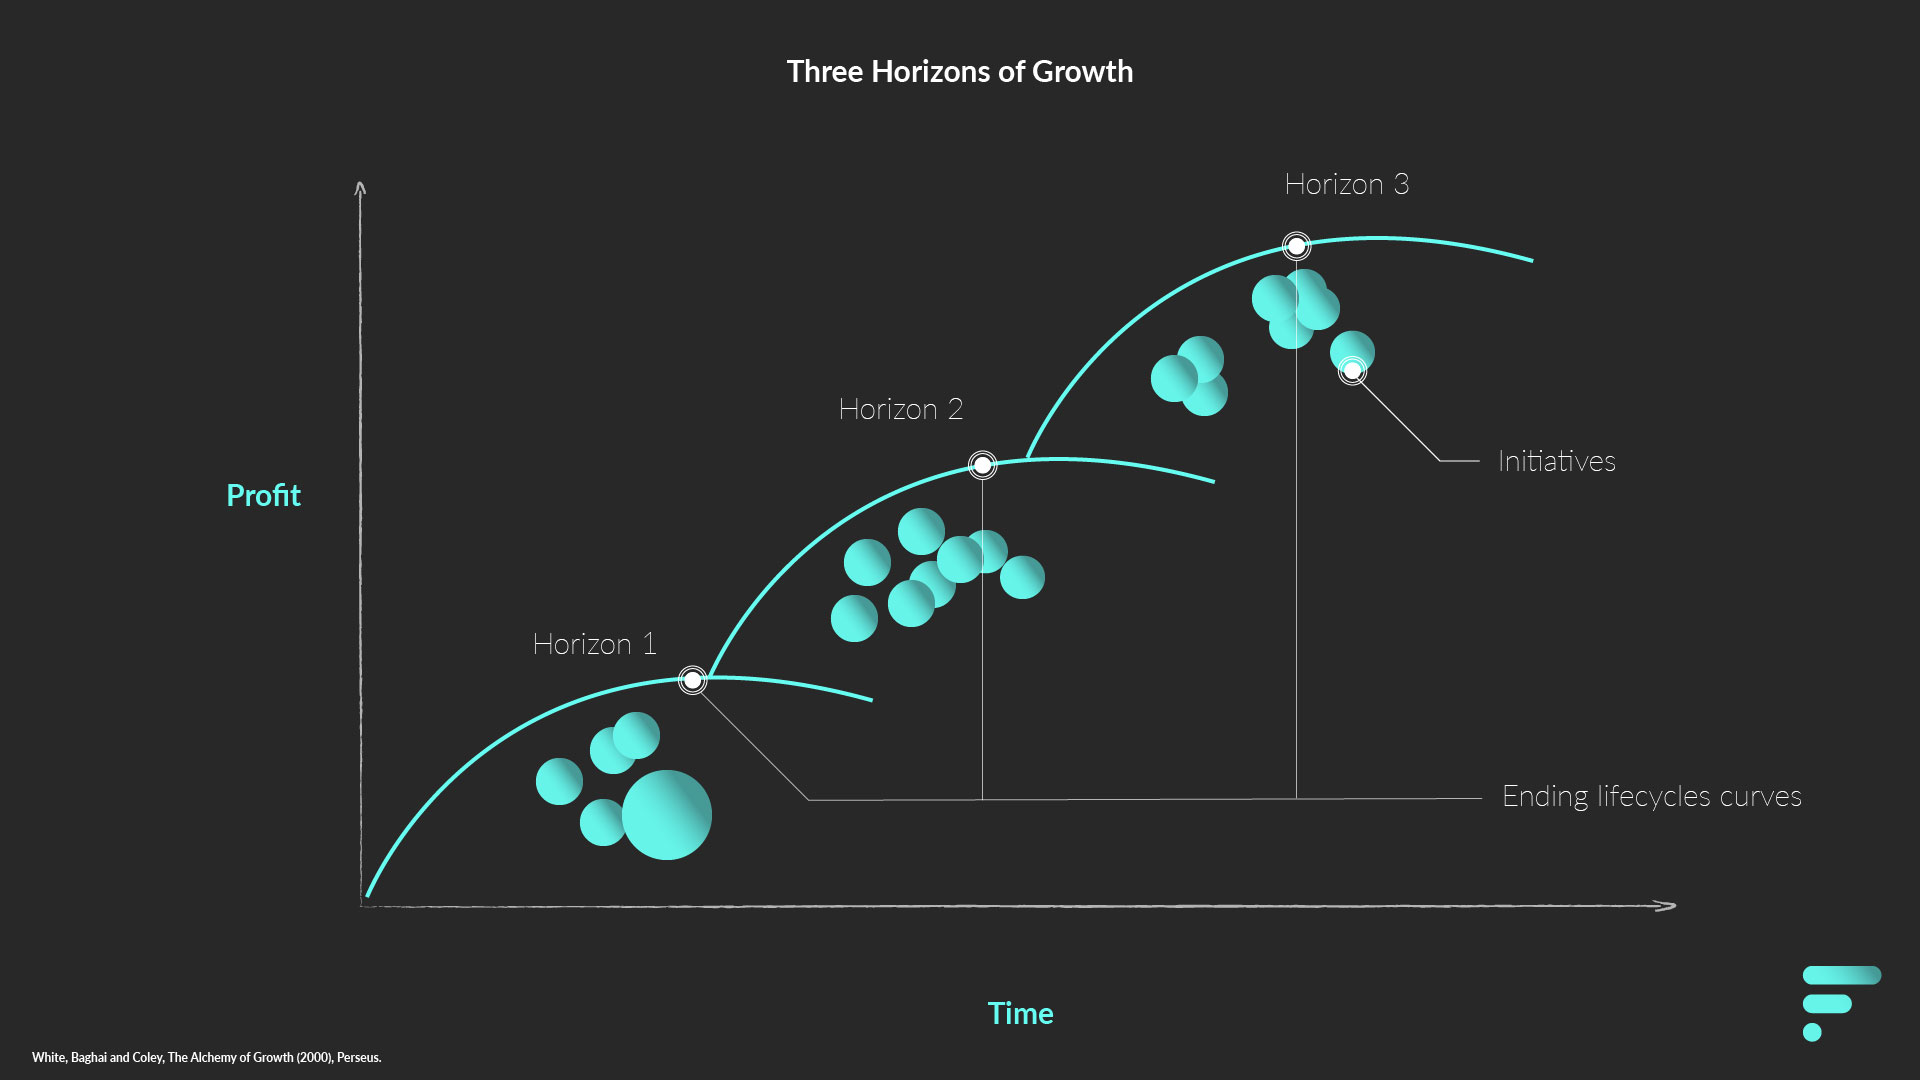 Three Horizons of Growth with Clusters